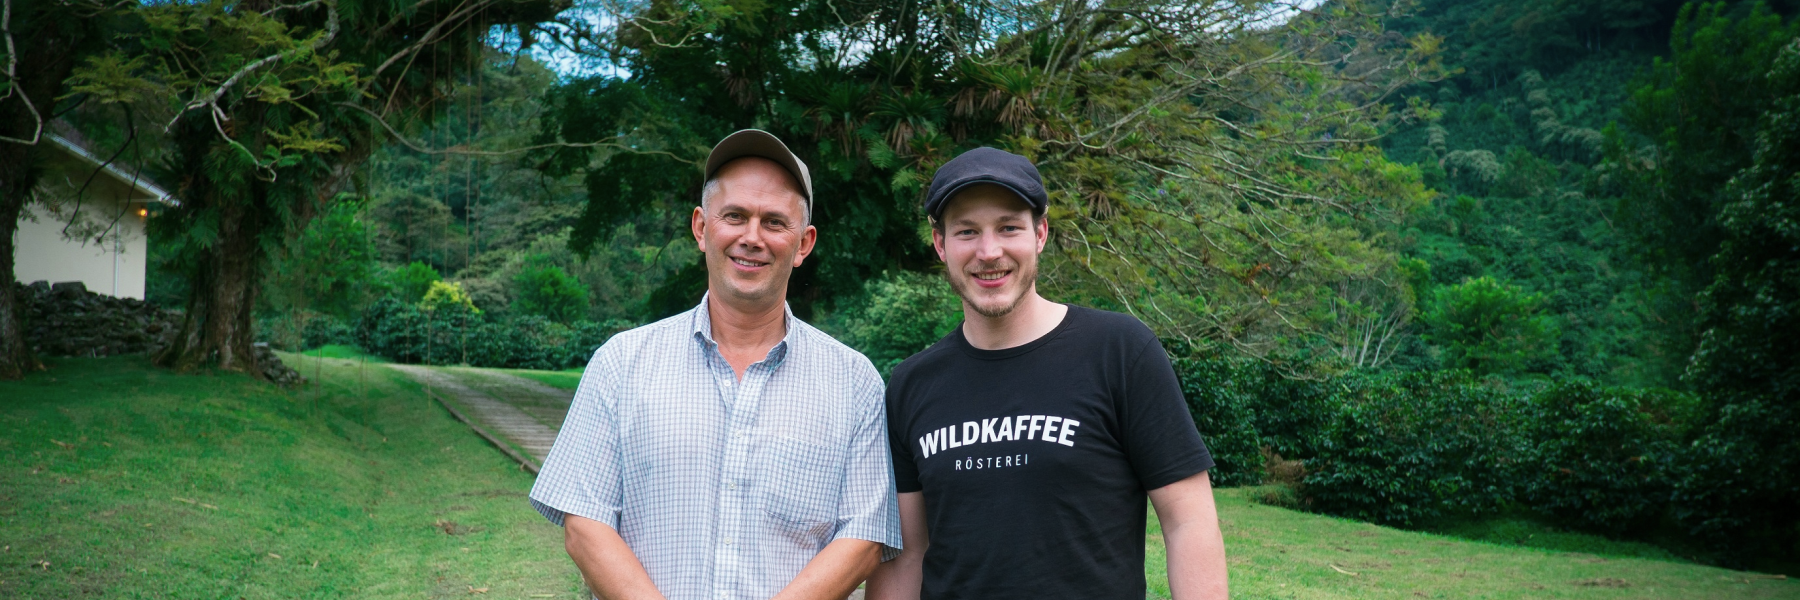 Wildkaffee mit Farmer in Panama